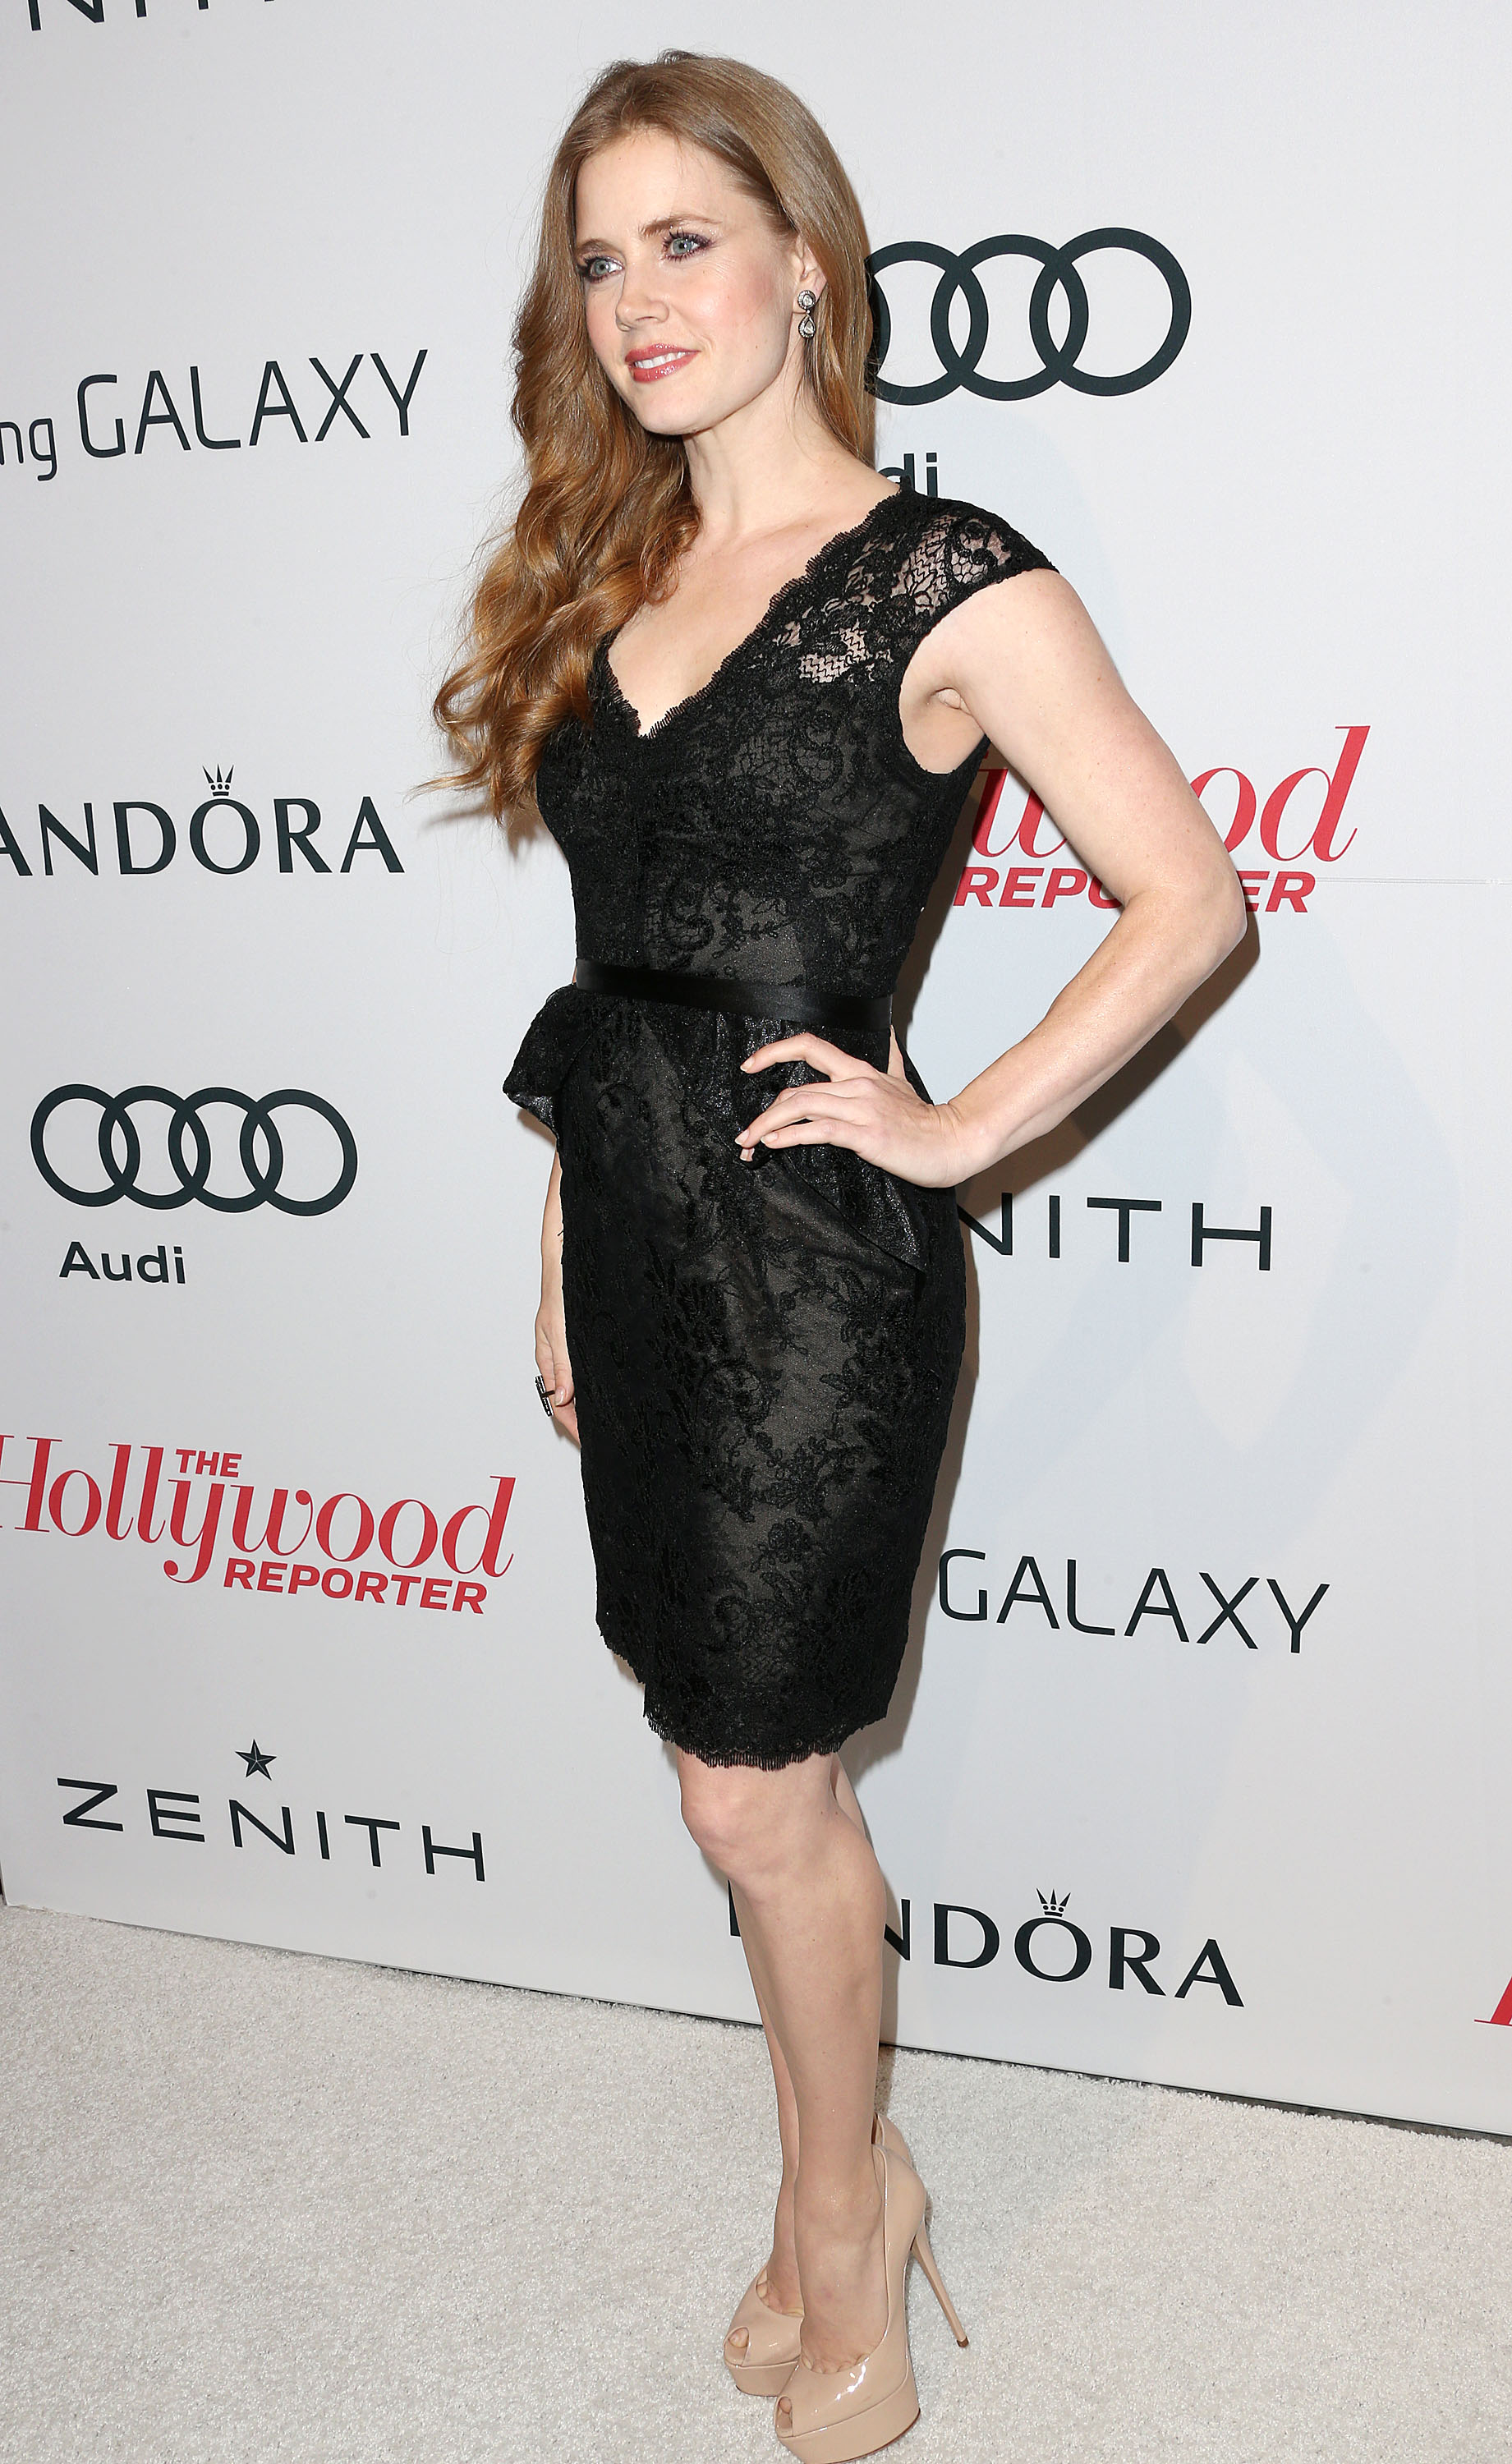 Amy Adams is Lovely in a Lace Little Black Dress and High Heels